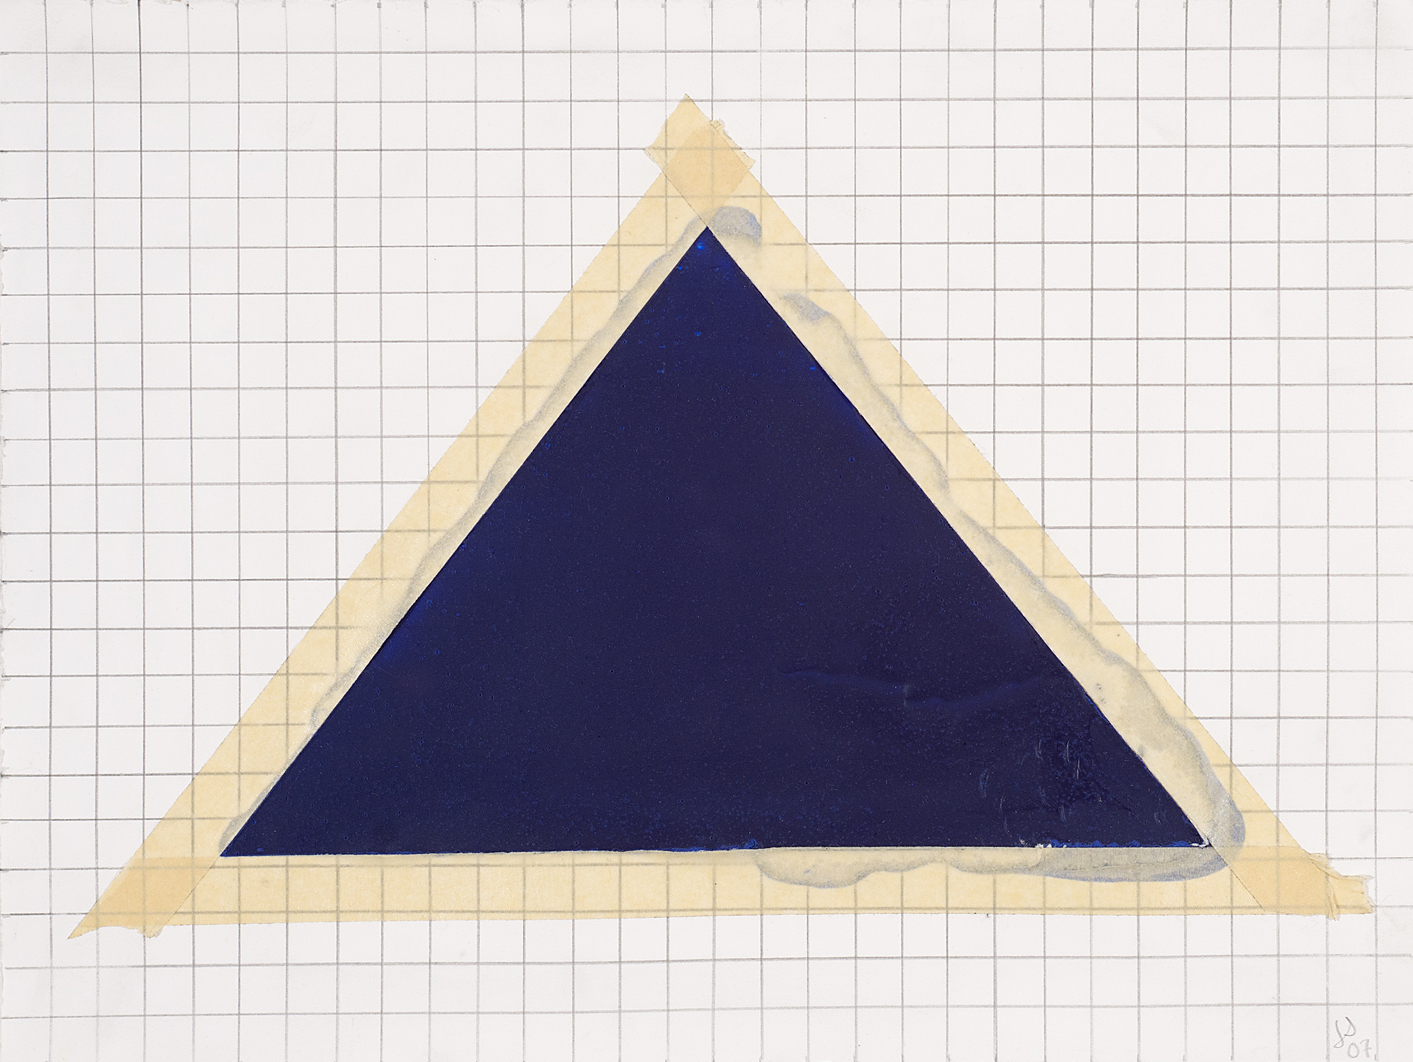 Blue Triangle and Tape on Grid,2007 15 by 20 inches Paint and tape on paper